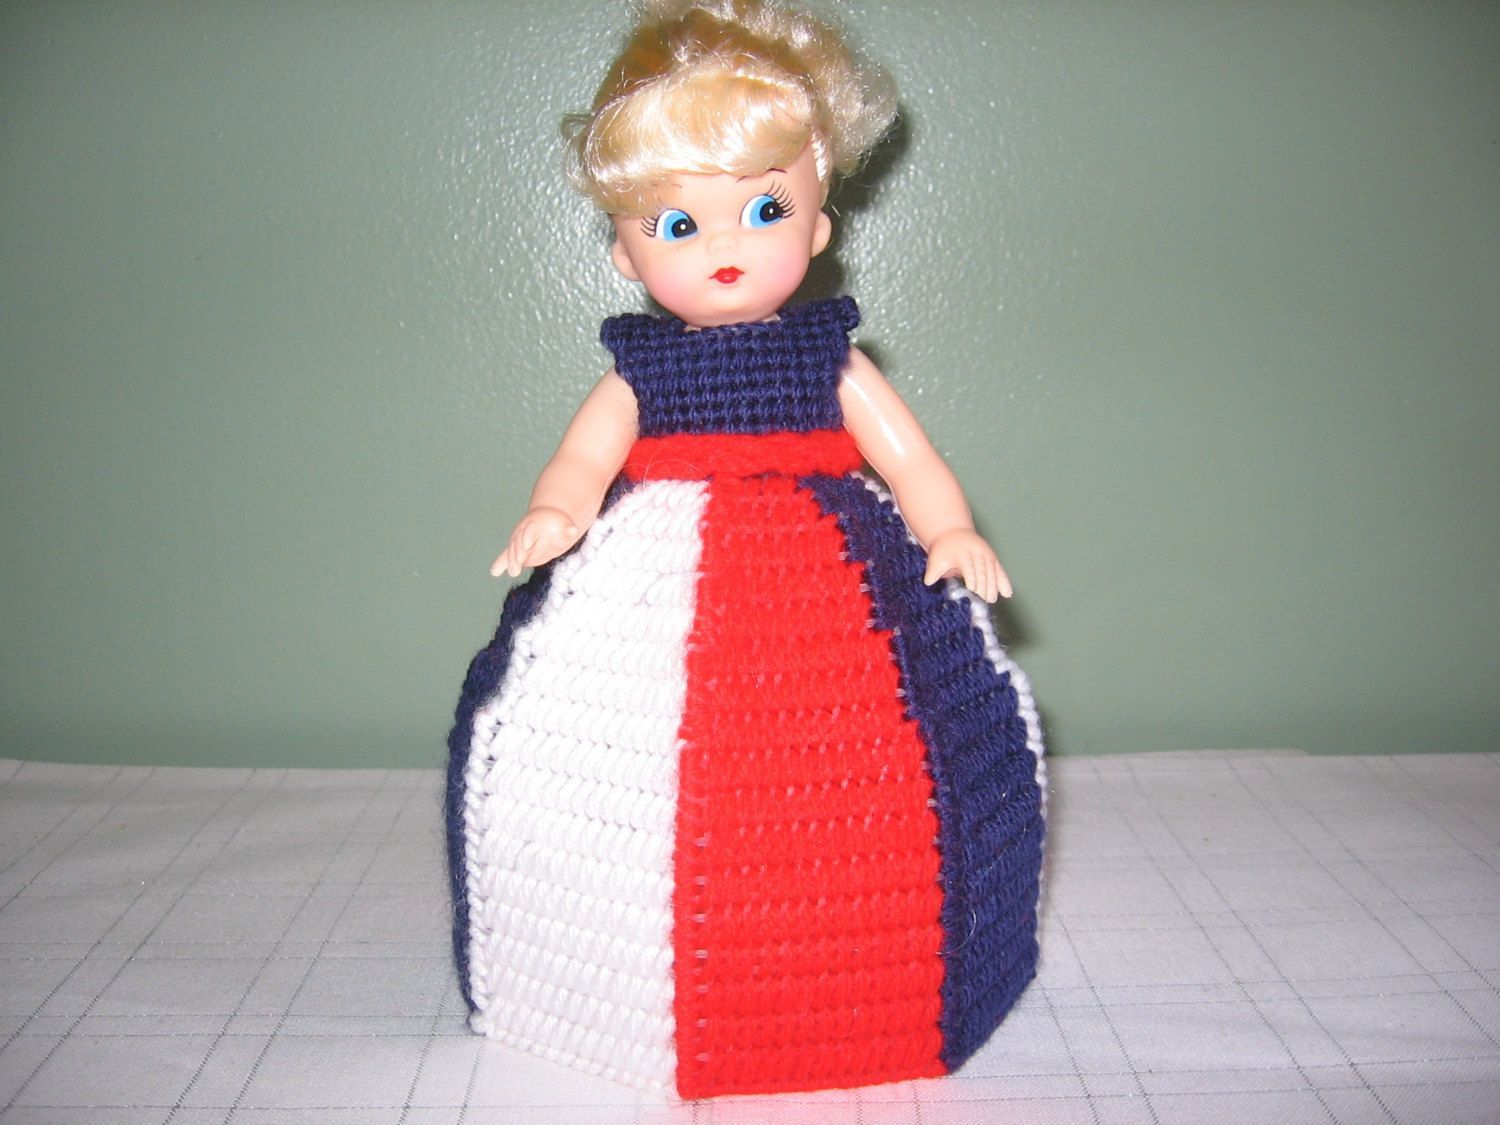 Red/White/Blue Collectible Doll - use for decoration or air freshner doll by CreationsbyAMJ on Etsy #airfreshnerdolls Red/White/Blue Collectible Doll - use for decoration or air freshner doll by CreationsbyAMJ on Etsy #airfreshnerdolls